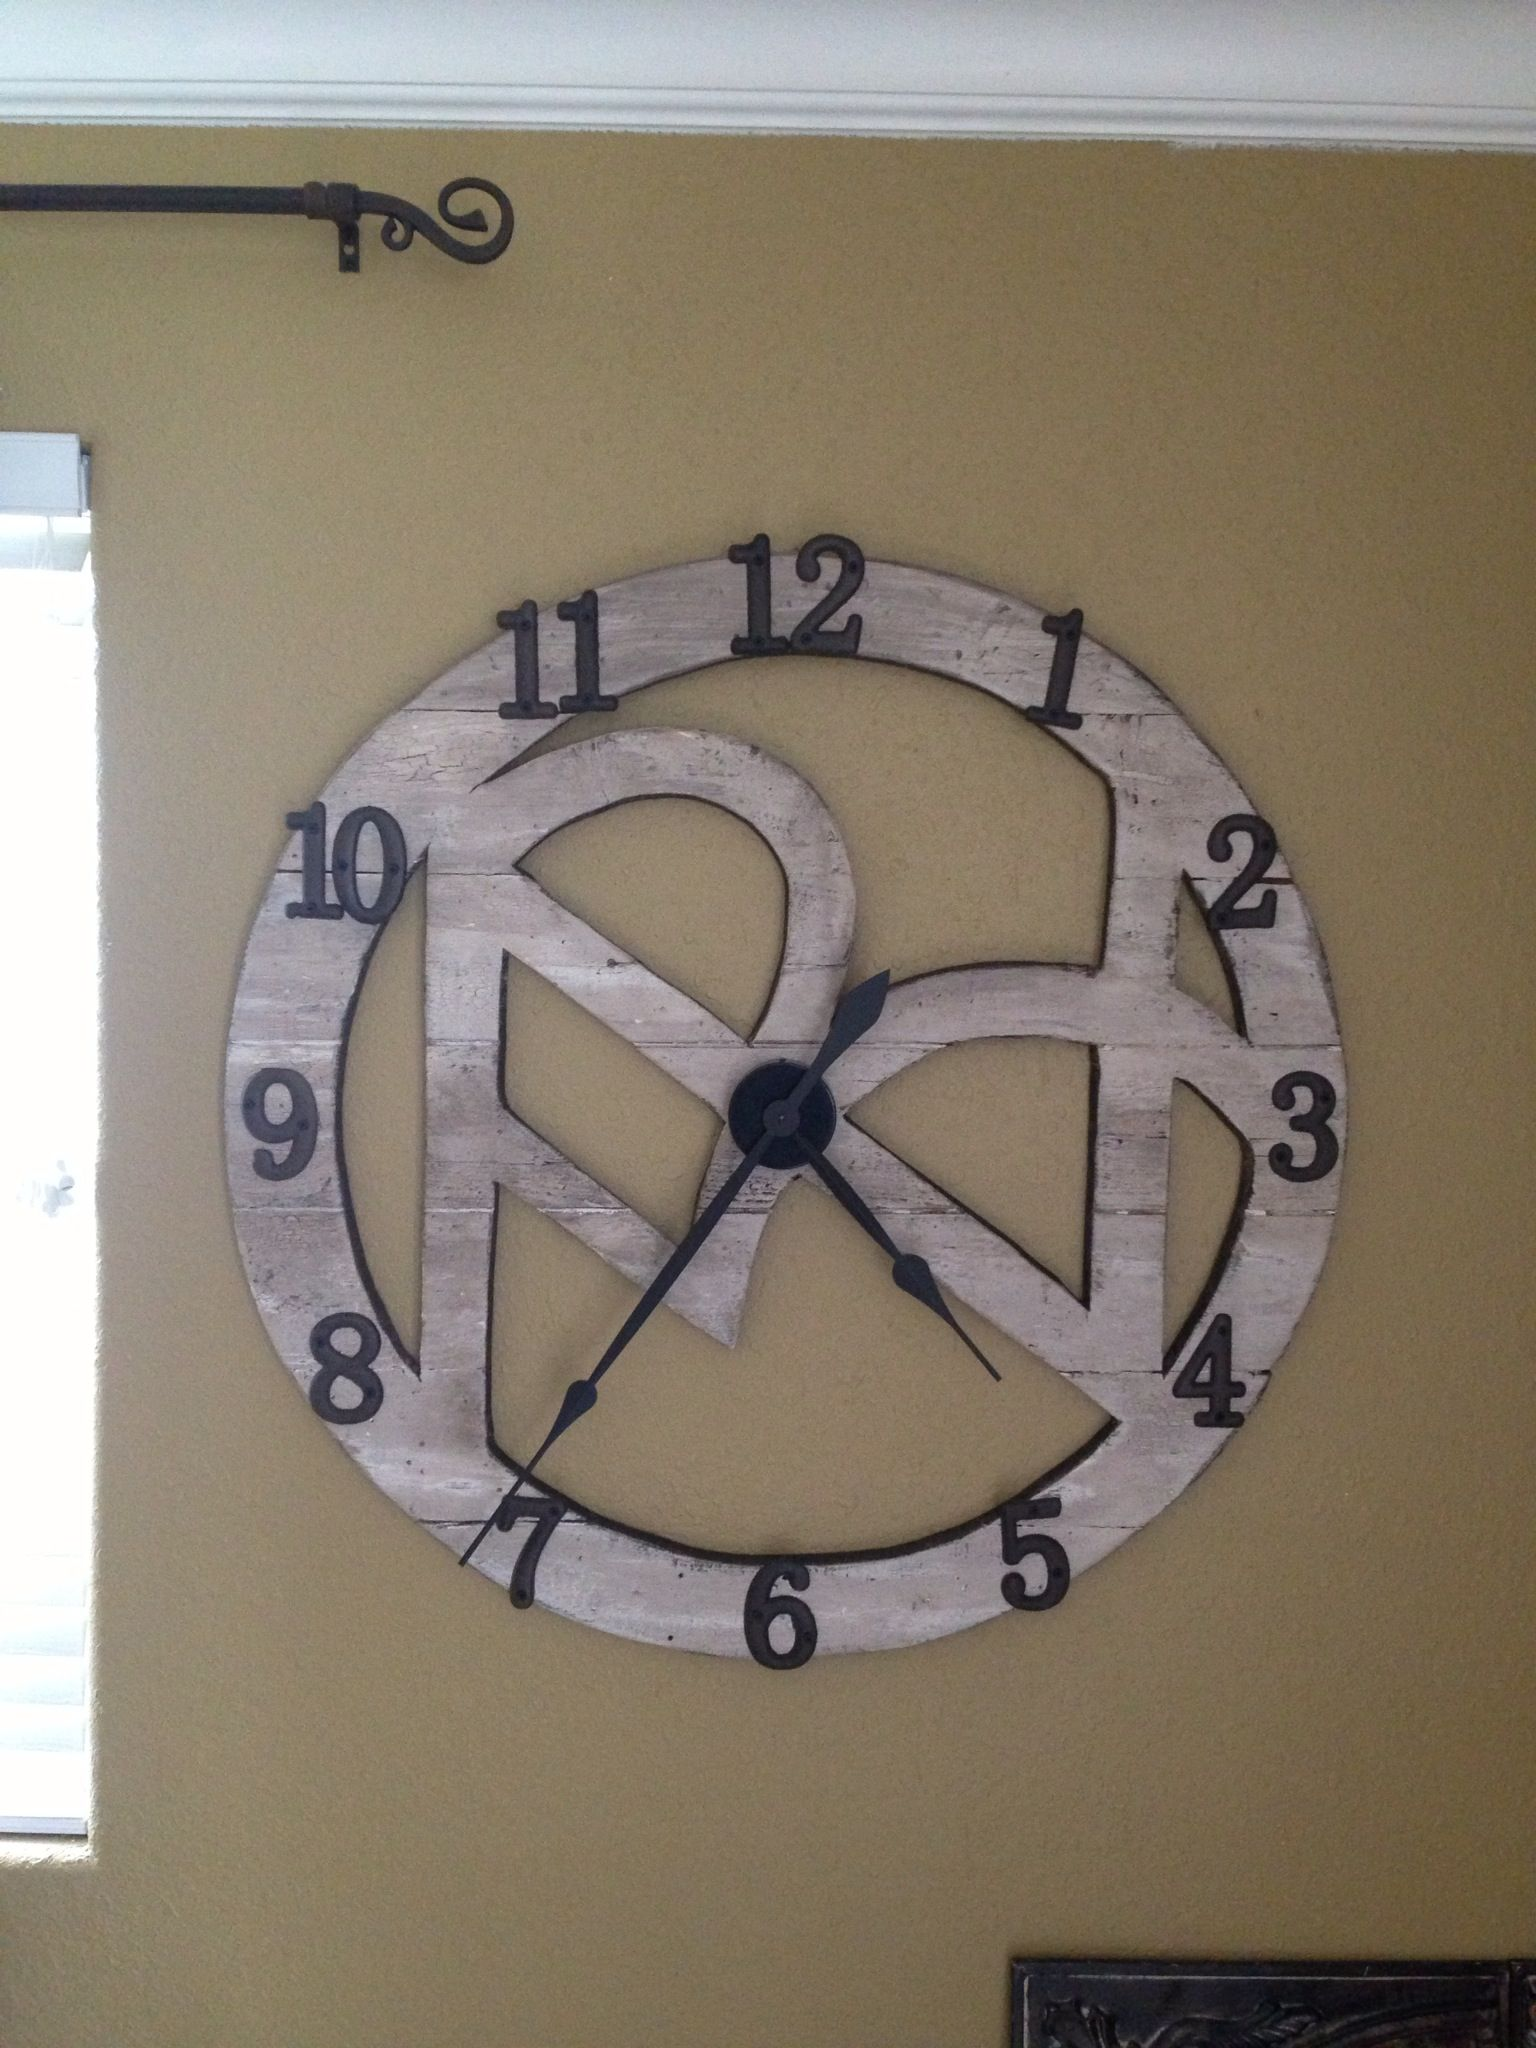 Clock made by my husband out of pallet wood pieces. The design was created by his grandfather in the '50's to brand cattle. It spells our last name.